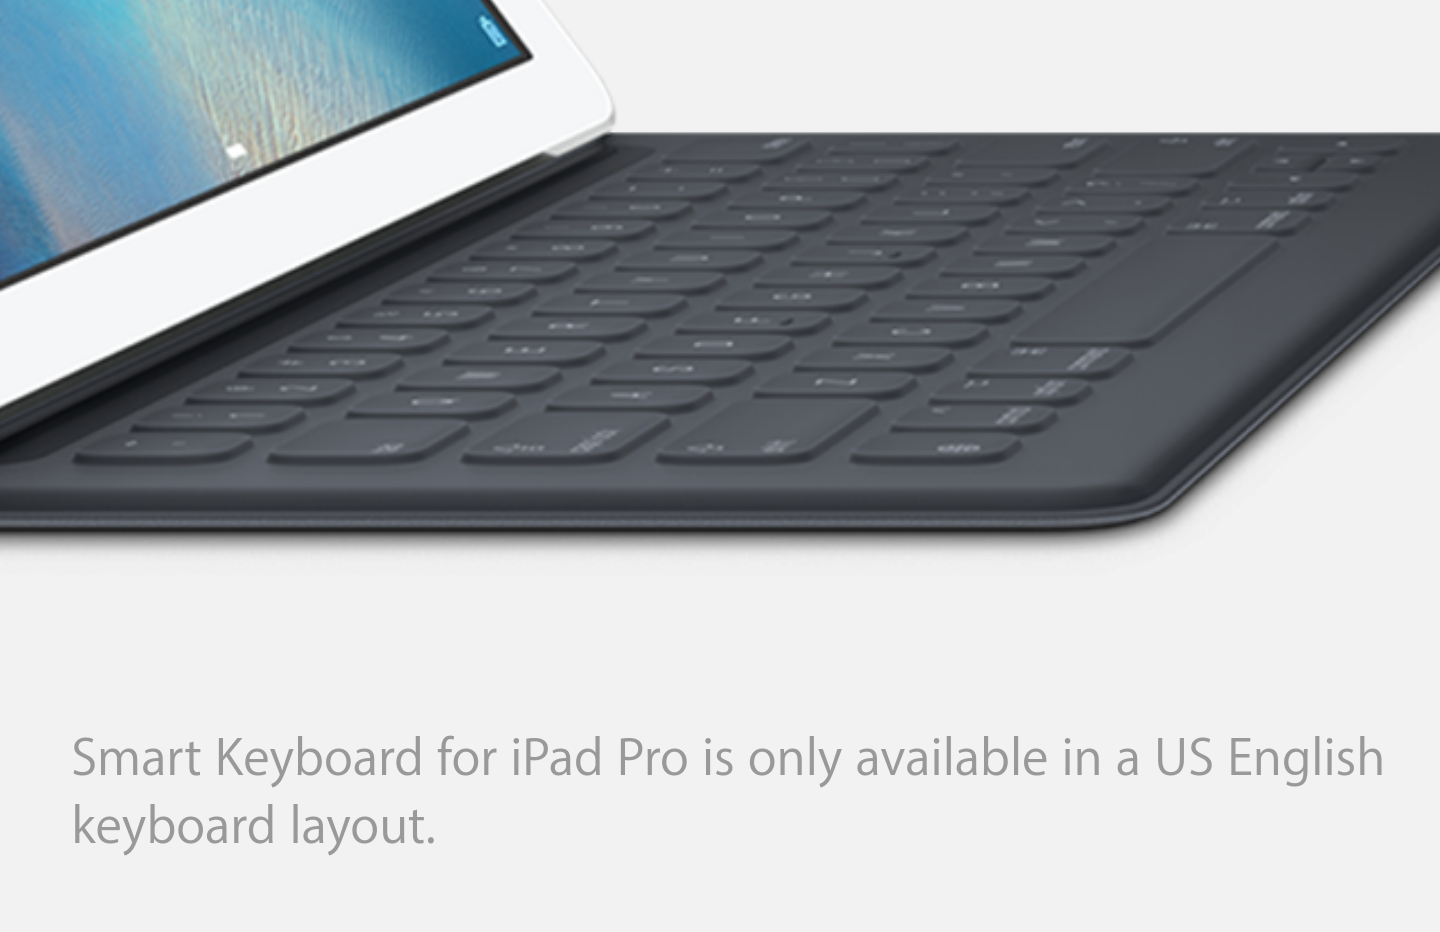 Apple ipad pro smart keyboard you can only buy the us layout apple ipad pro smart keyboard you can only buy the us layout coolsmartphone biocorpaavc Image collections